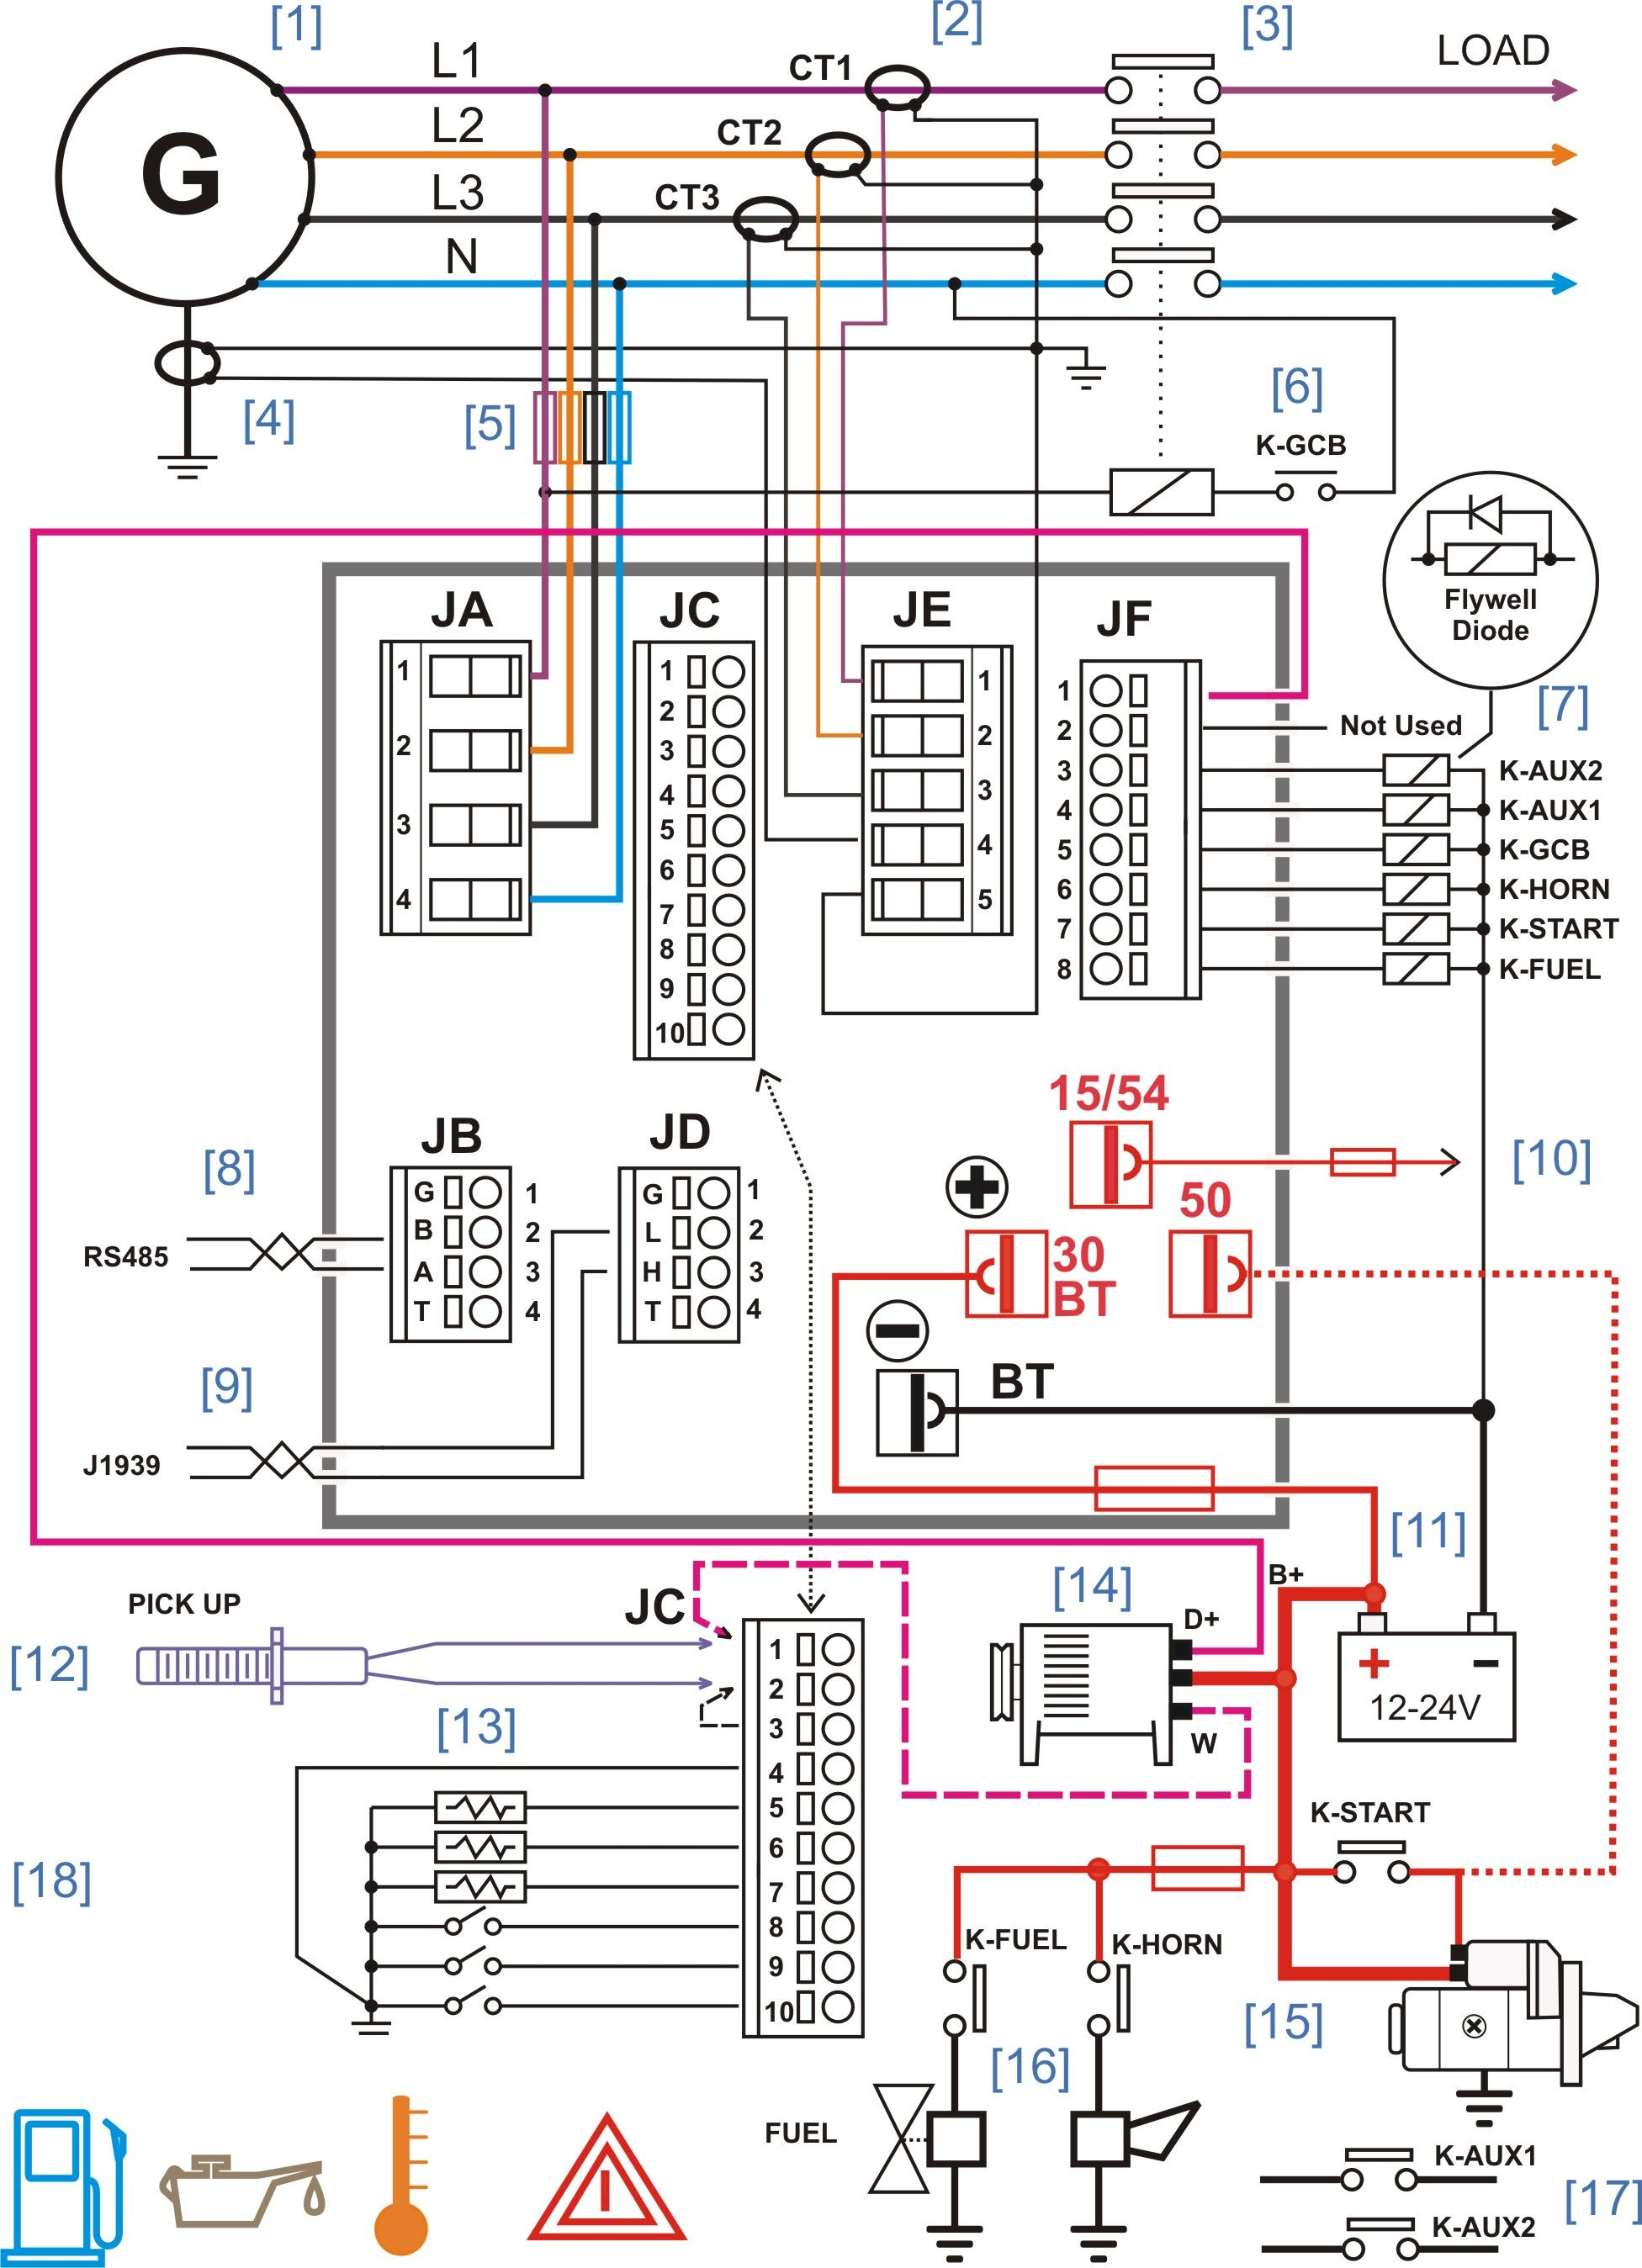 [SCHEMATICS_4PO]  DIAGRAM] Ac Control Wiring Diagram FULL Version HD Quality Wiring Diagram -  DIAGRAMSYS.UNICEFFLAUBERT.FR | Caltric Wiring Diagram |  | Diagram Database